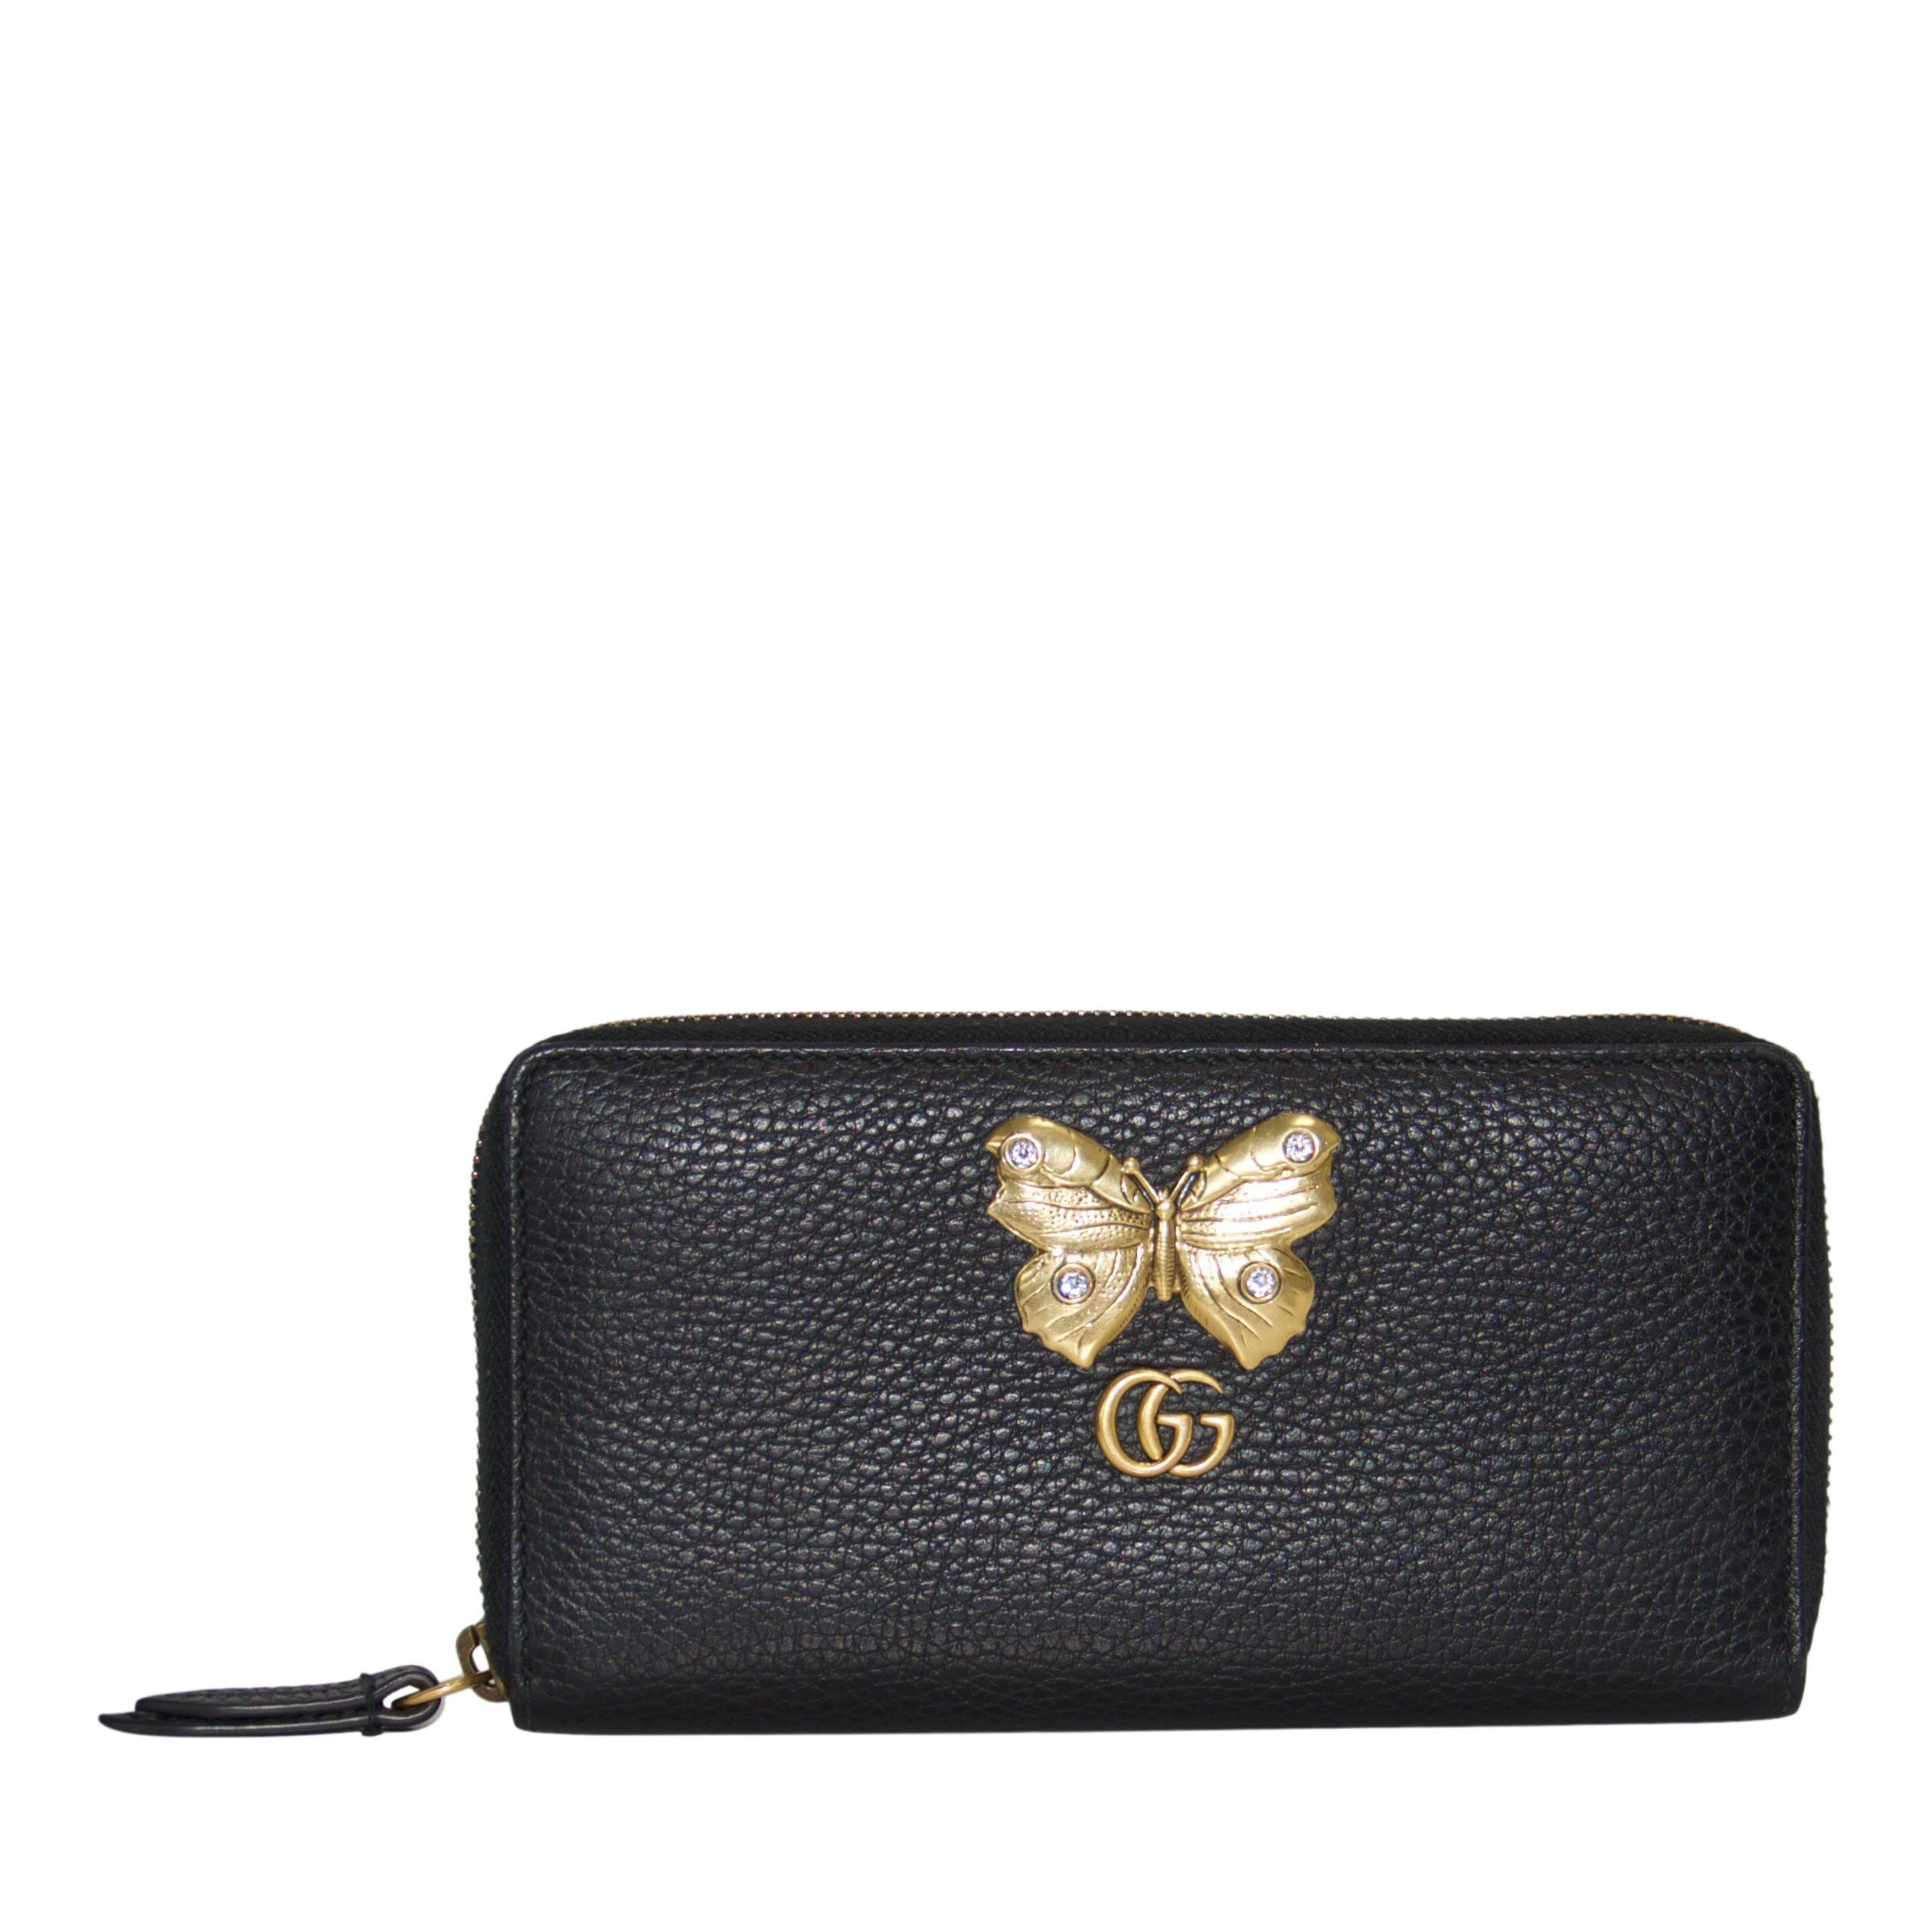 4bf5fcd80d27 Gucci Black Leather Zip-Around Wallet with Butterfly Wallets Gucci ...